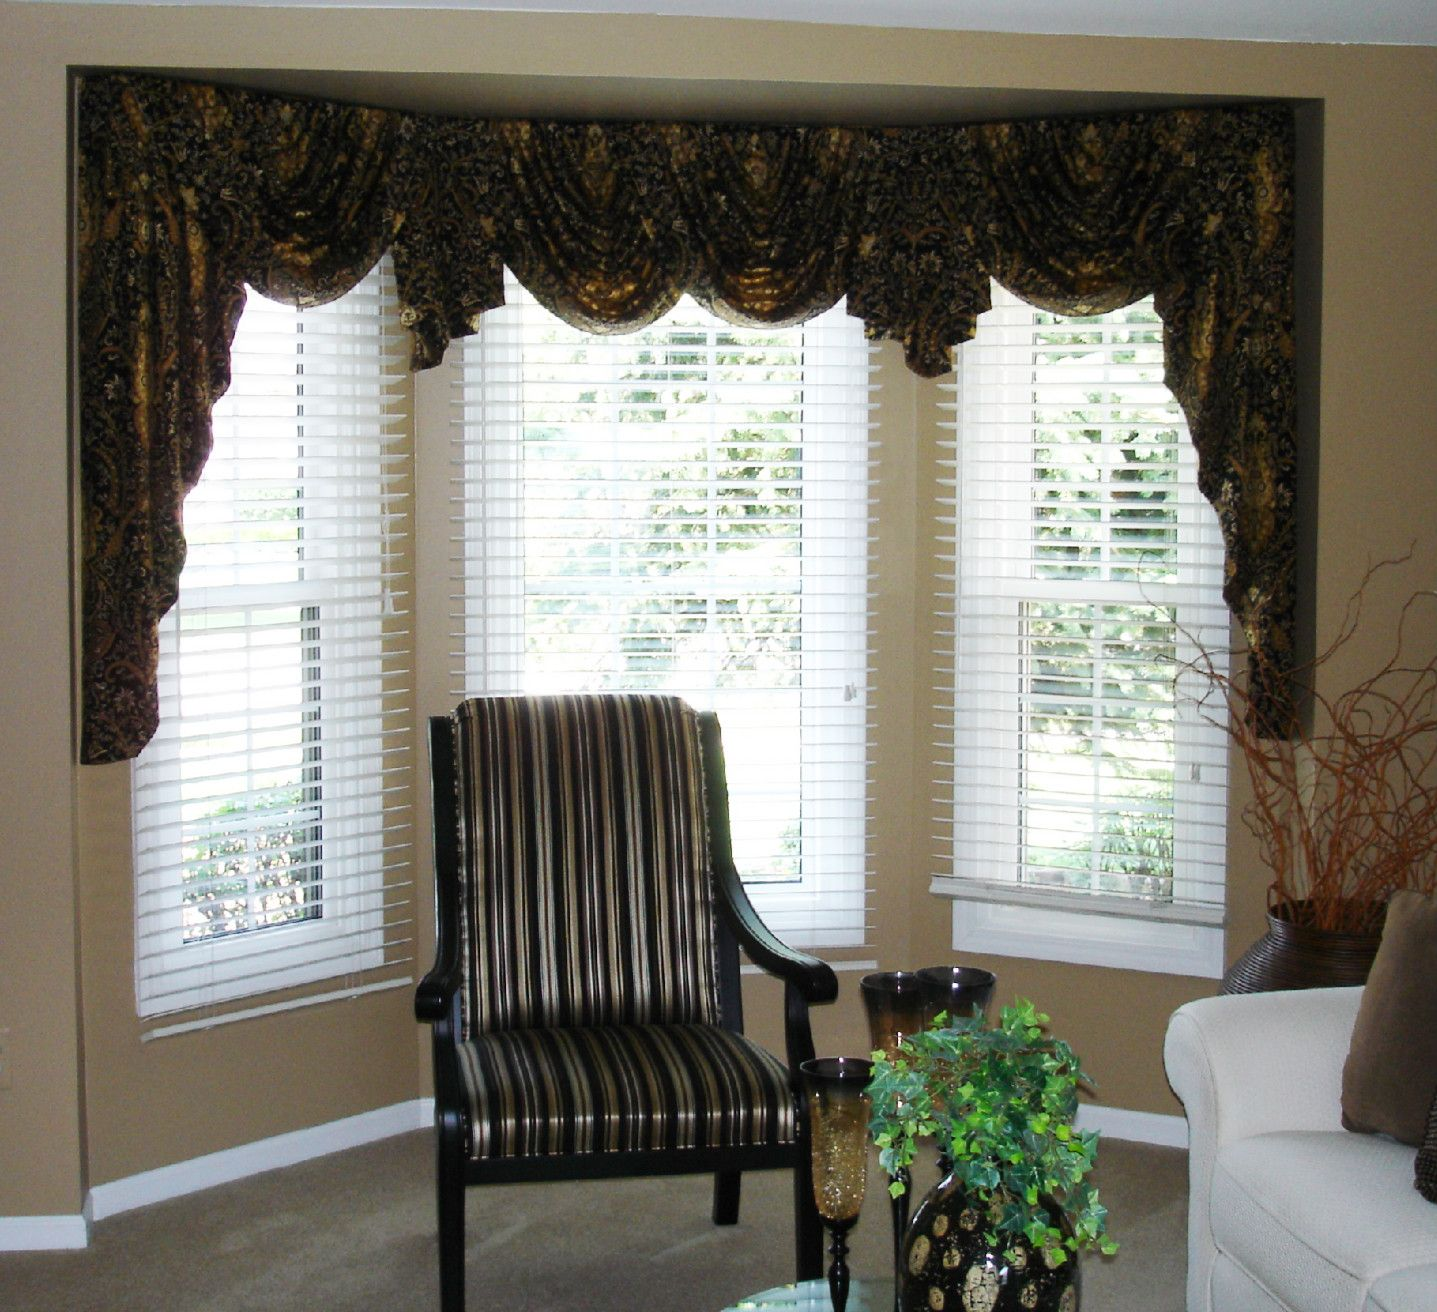 Drapery Designs For Living Room Gorgeous Swag Valances For Bay Windows  Swags And Jabots In A Bay Window Design Ideas